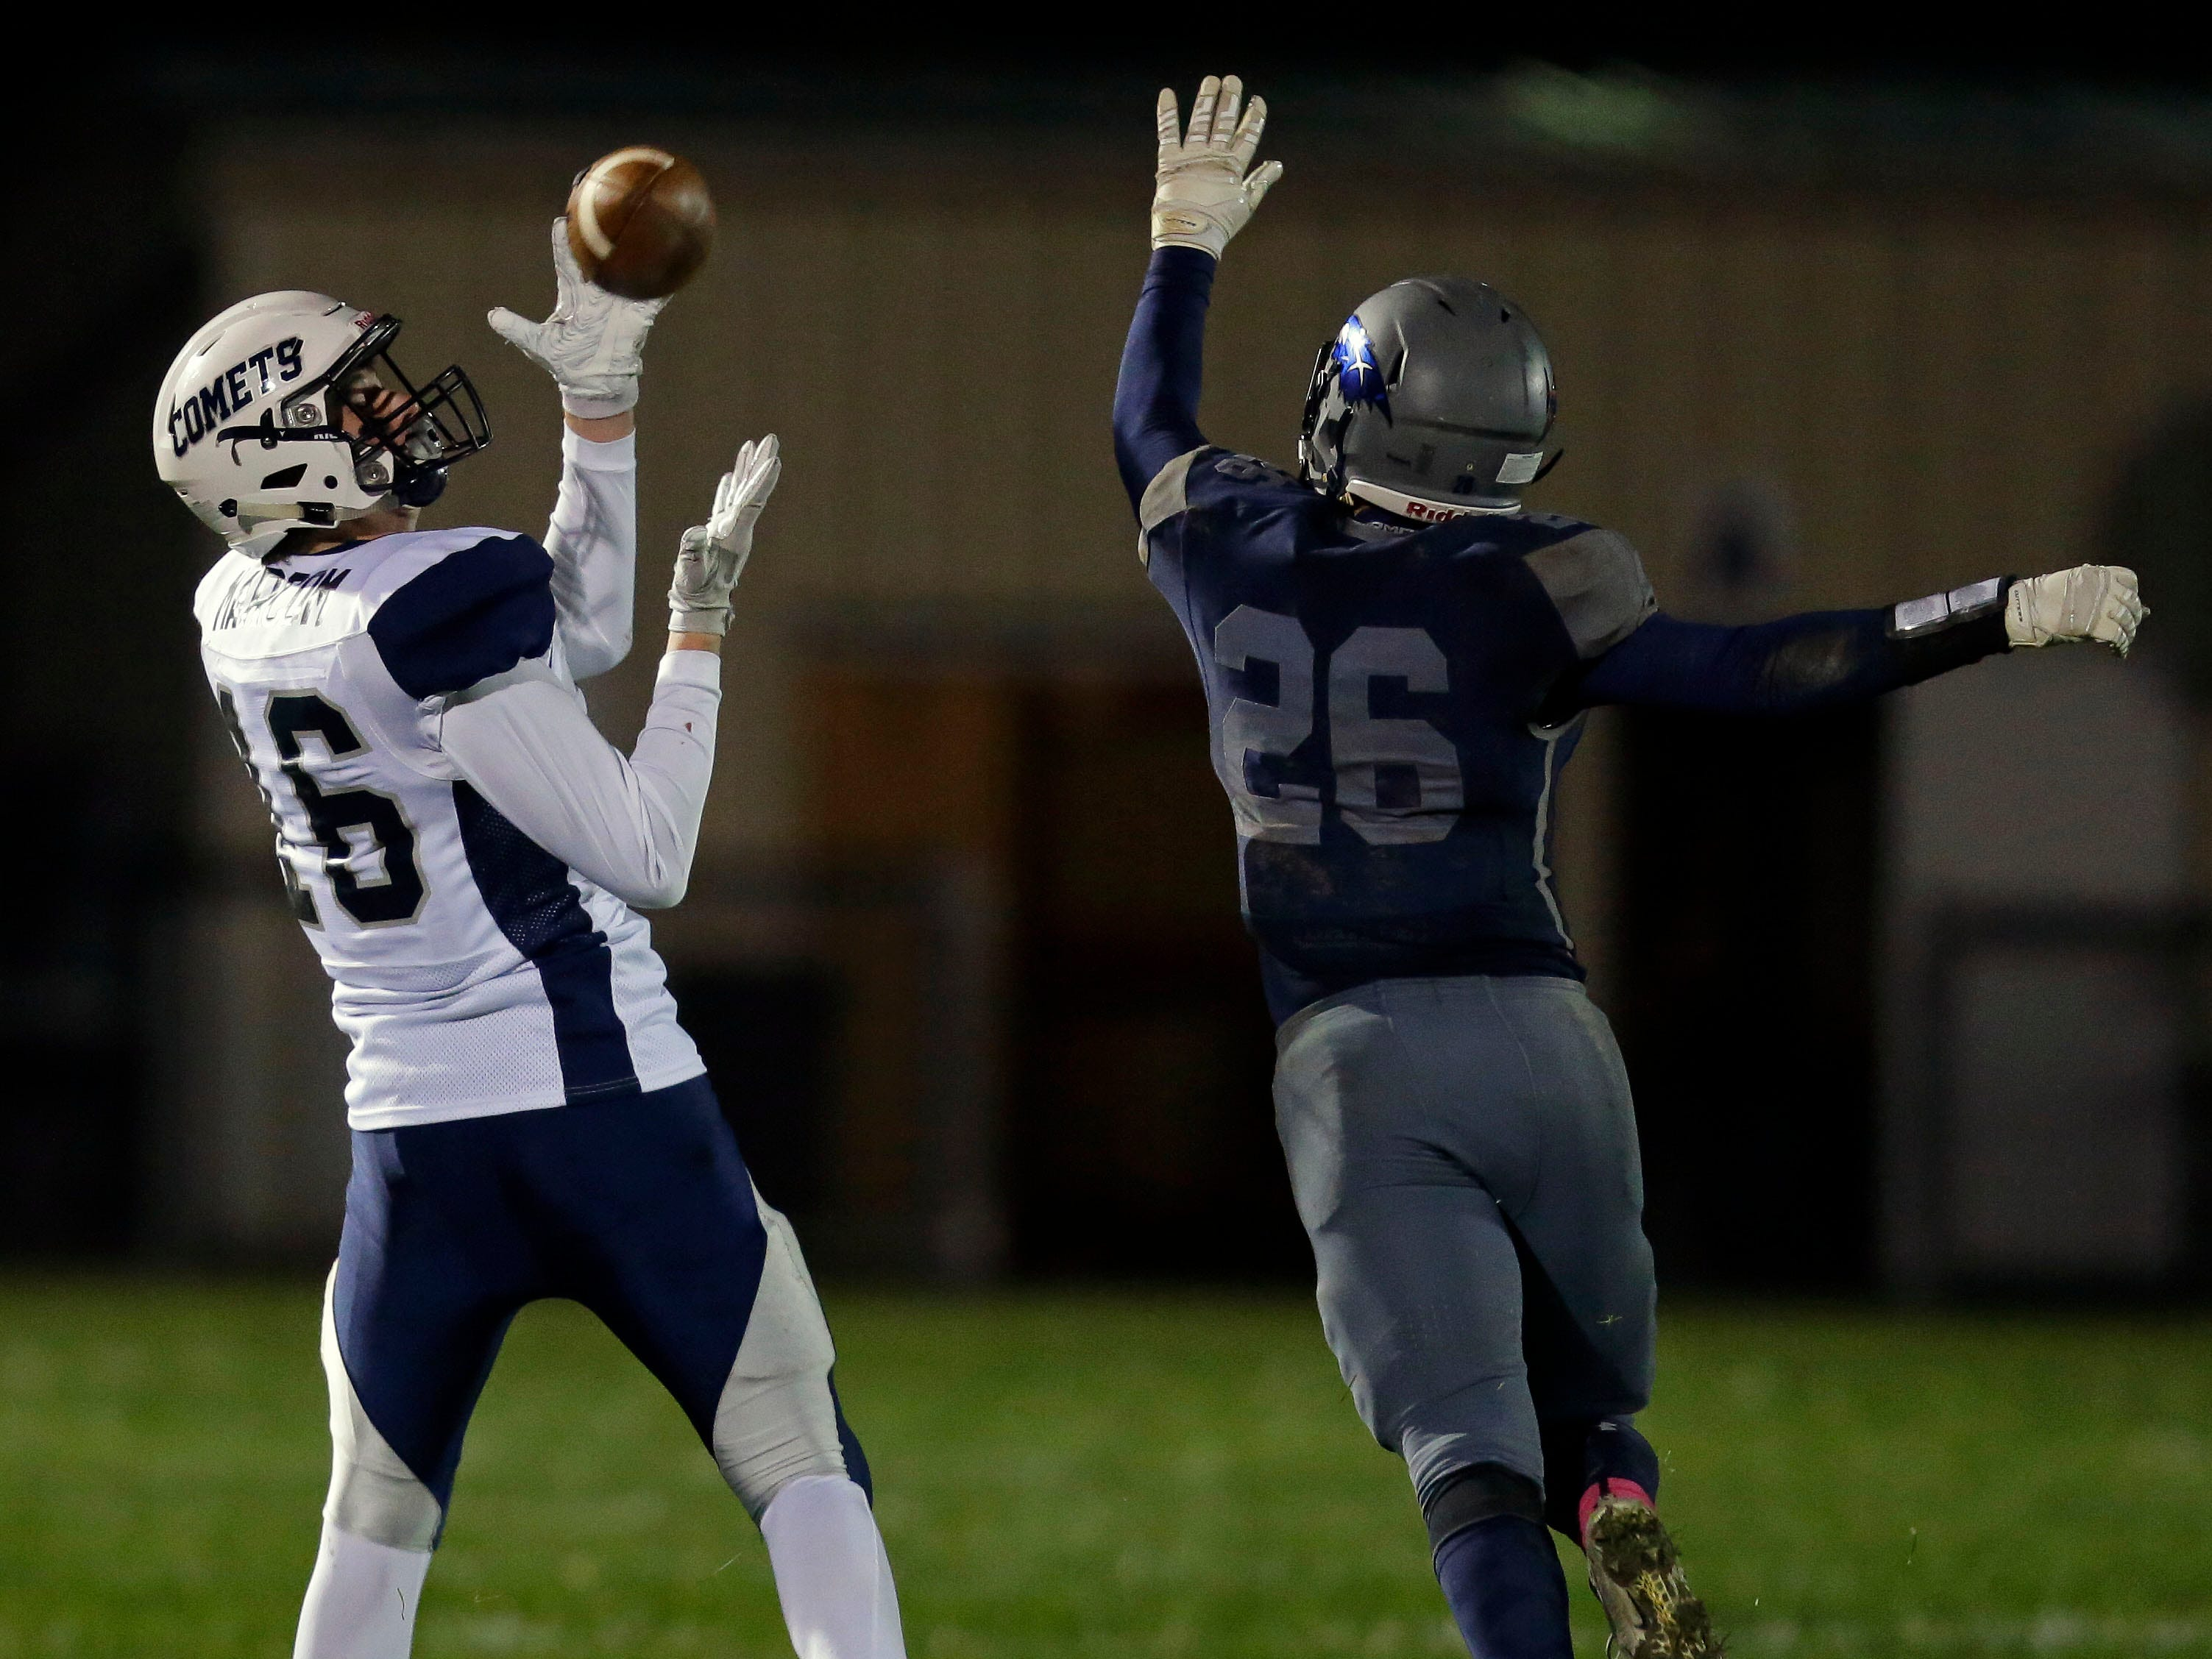 Hunter Marcom of Waupaca hauls in a pass while being defended by Chris VandenHeuvel of Xavier in a Bay Conference football game Friday, October 12, 2018, at Rocky Bleier Field in Appleton, Wis.